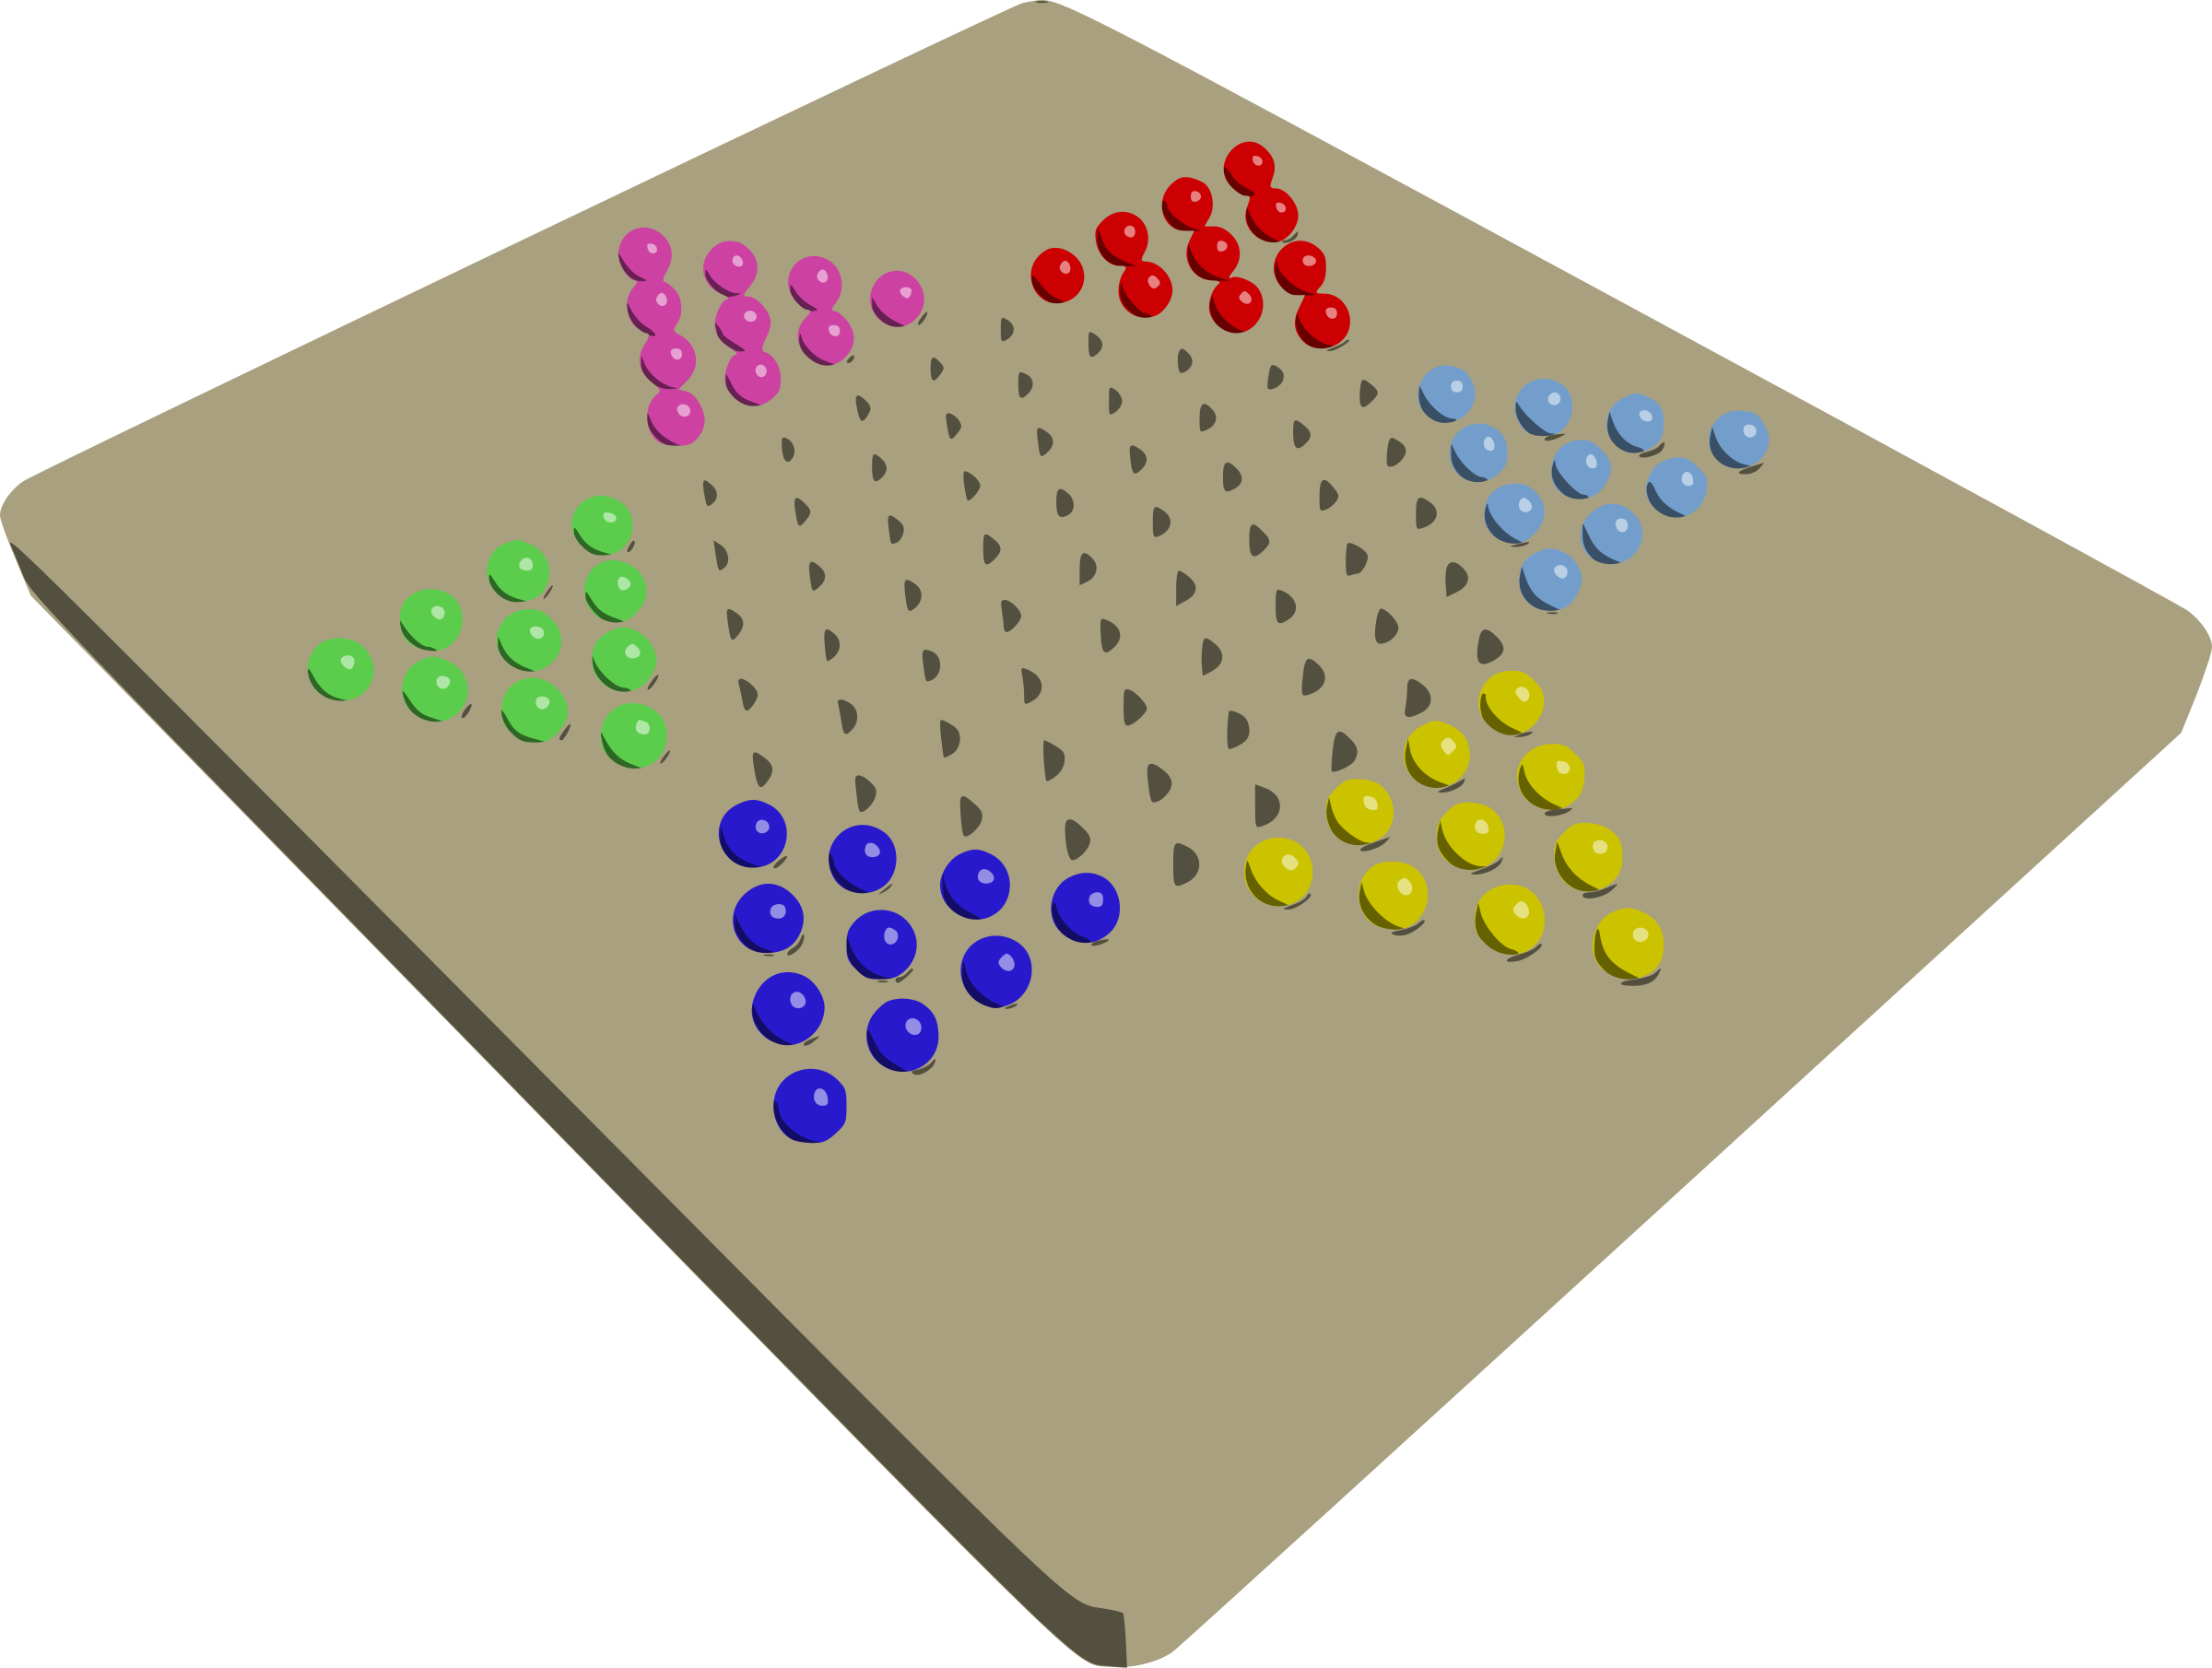 Marbles clipart marble game. Chinese checkers big image